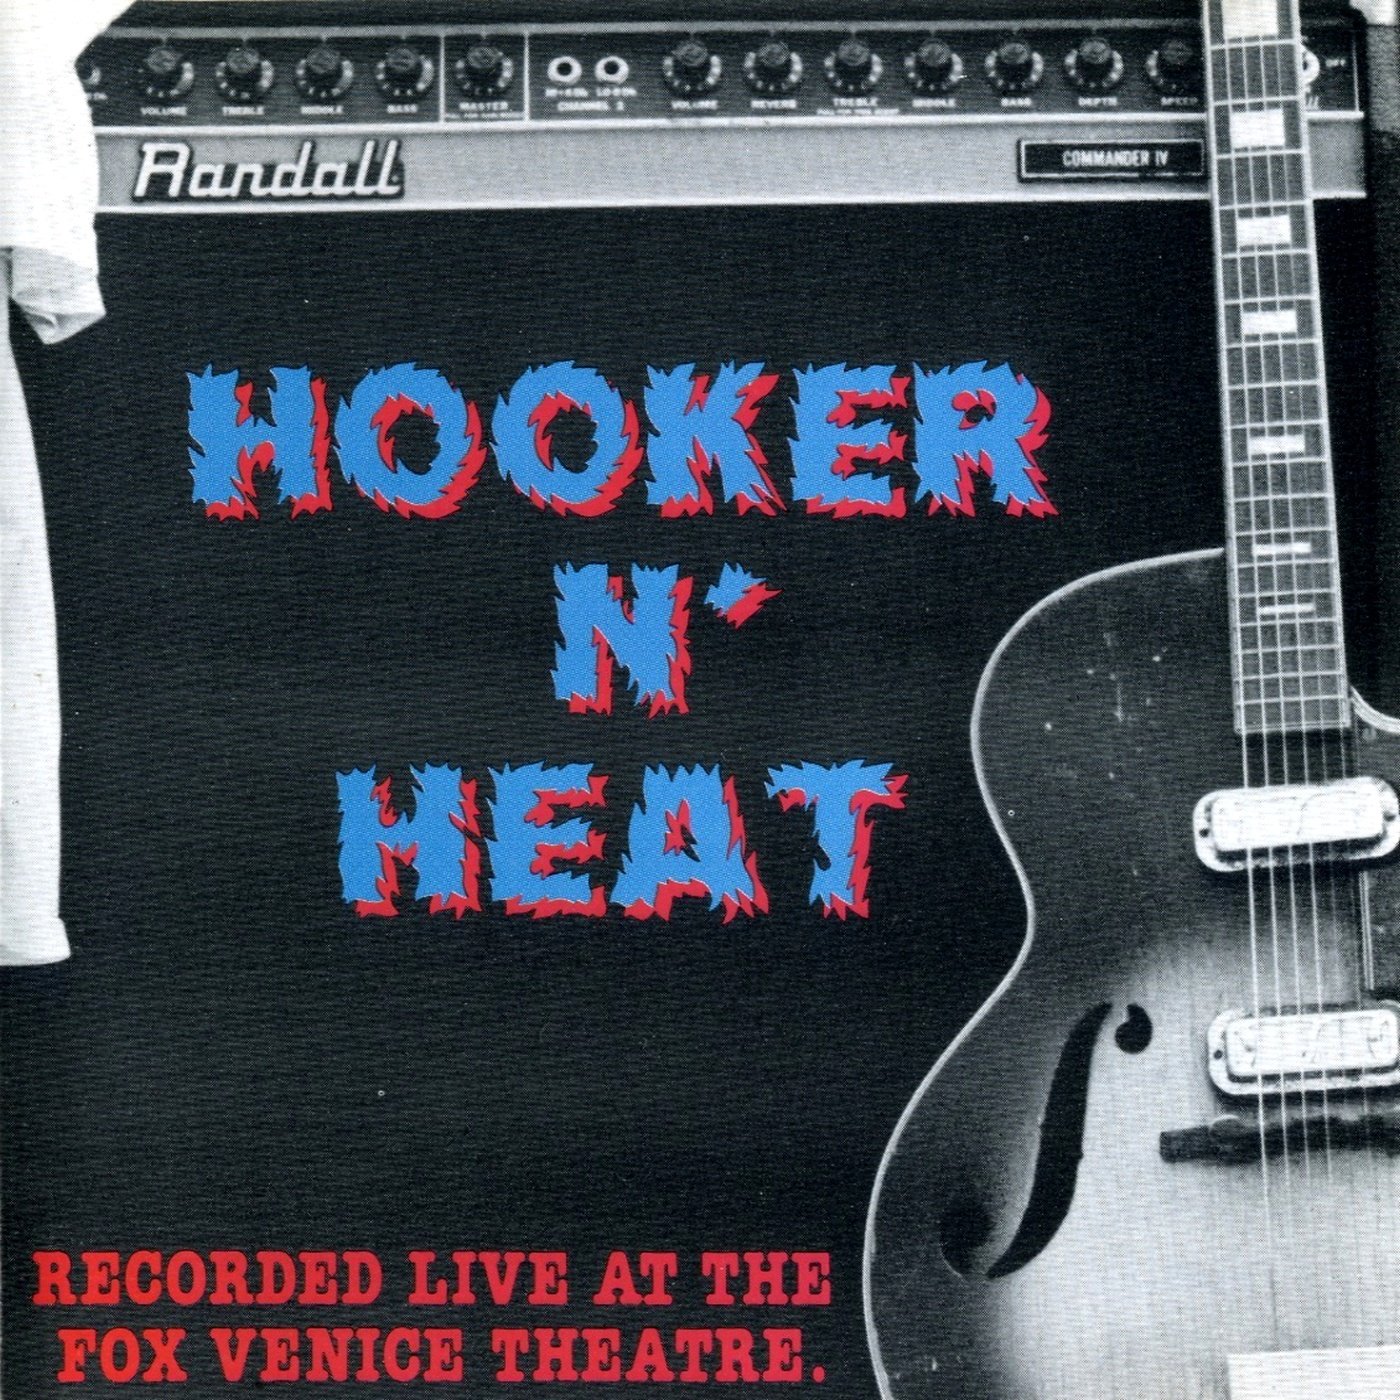 Canned Heat & John Lee Hooker - Hooker 'n Heat - Recorded Live at the Fox Venice Theatre (1981)